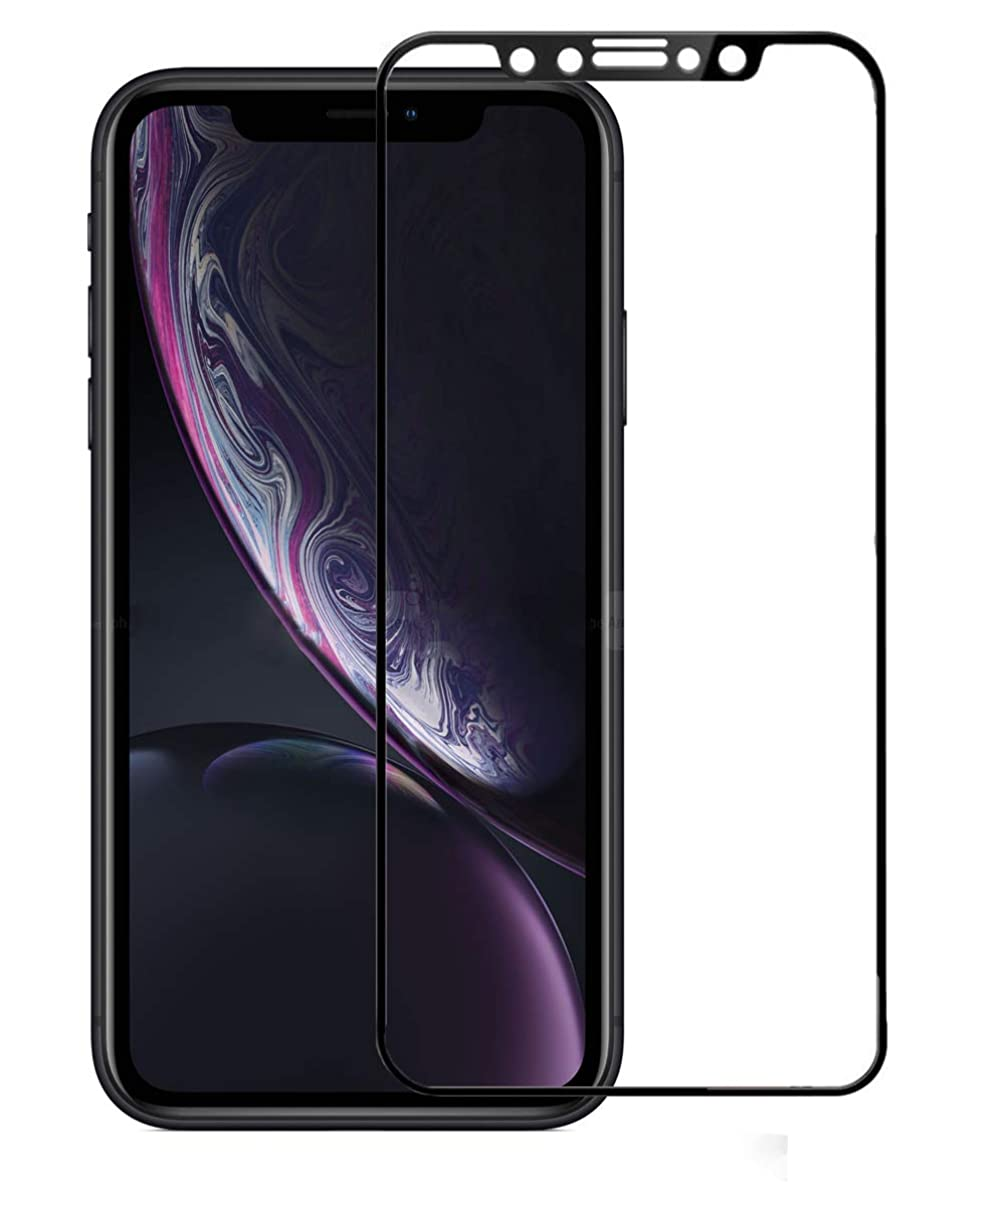 iPhone XR Screen Protector,Spevert [2-Pack] Premium HD Clarity [0.33mm] 9H Hardness 2.5D Film Tempered Glass Screen Protector Easy Apply for iPhone XR 6.1 inch